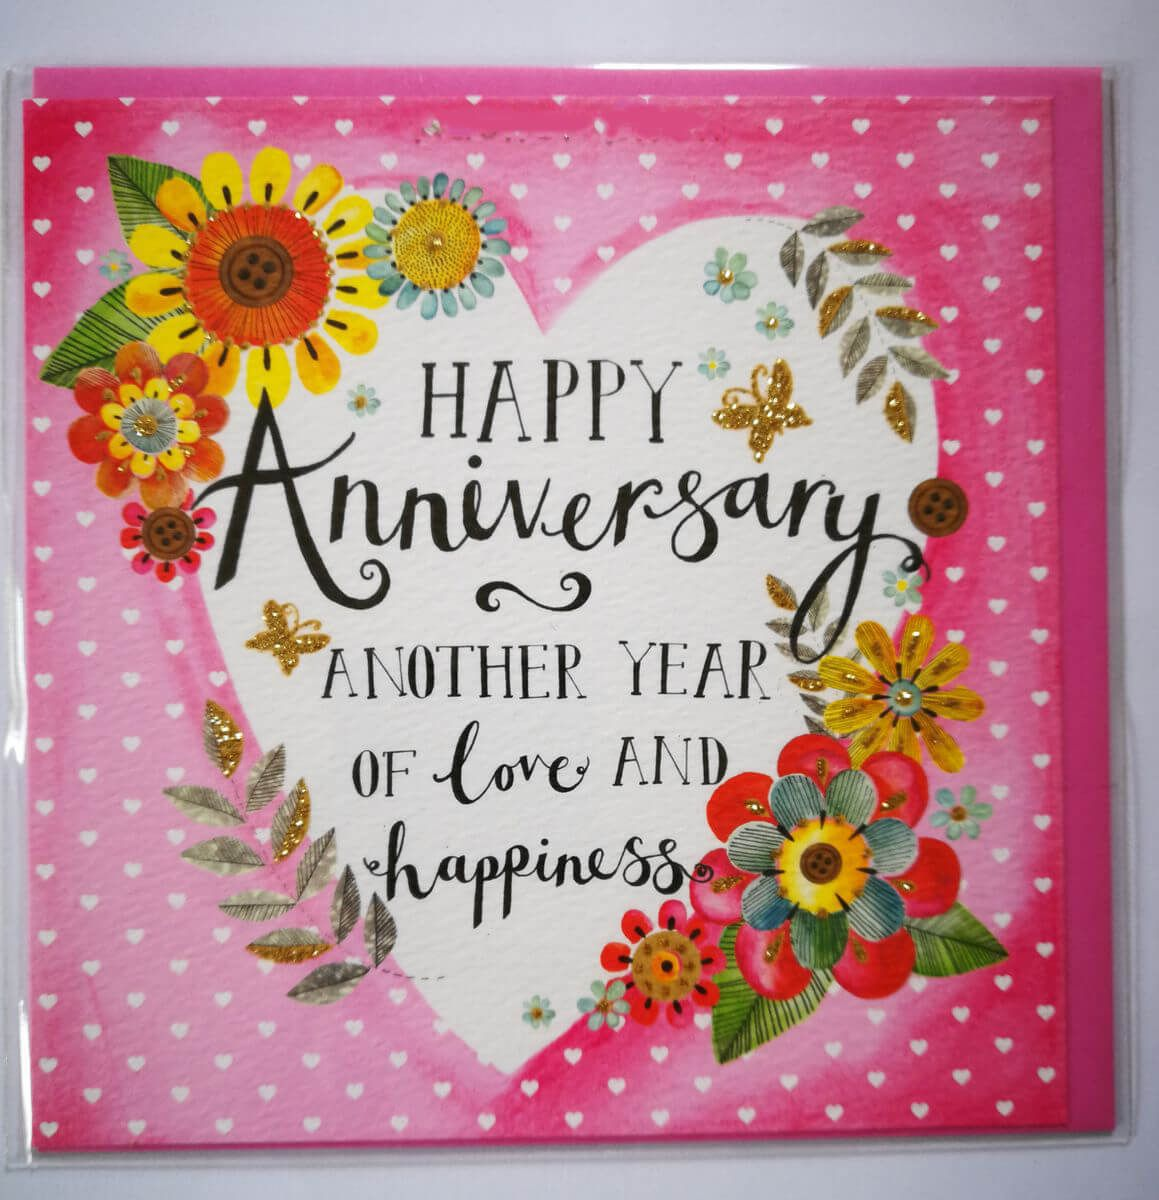 Happy Anniversary Card For Loved Ones Card Wishes For Anniversary Happy Anniversary Cards Anniversary Cards For Wife Anniversary Card For Parents